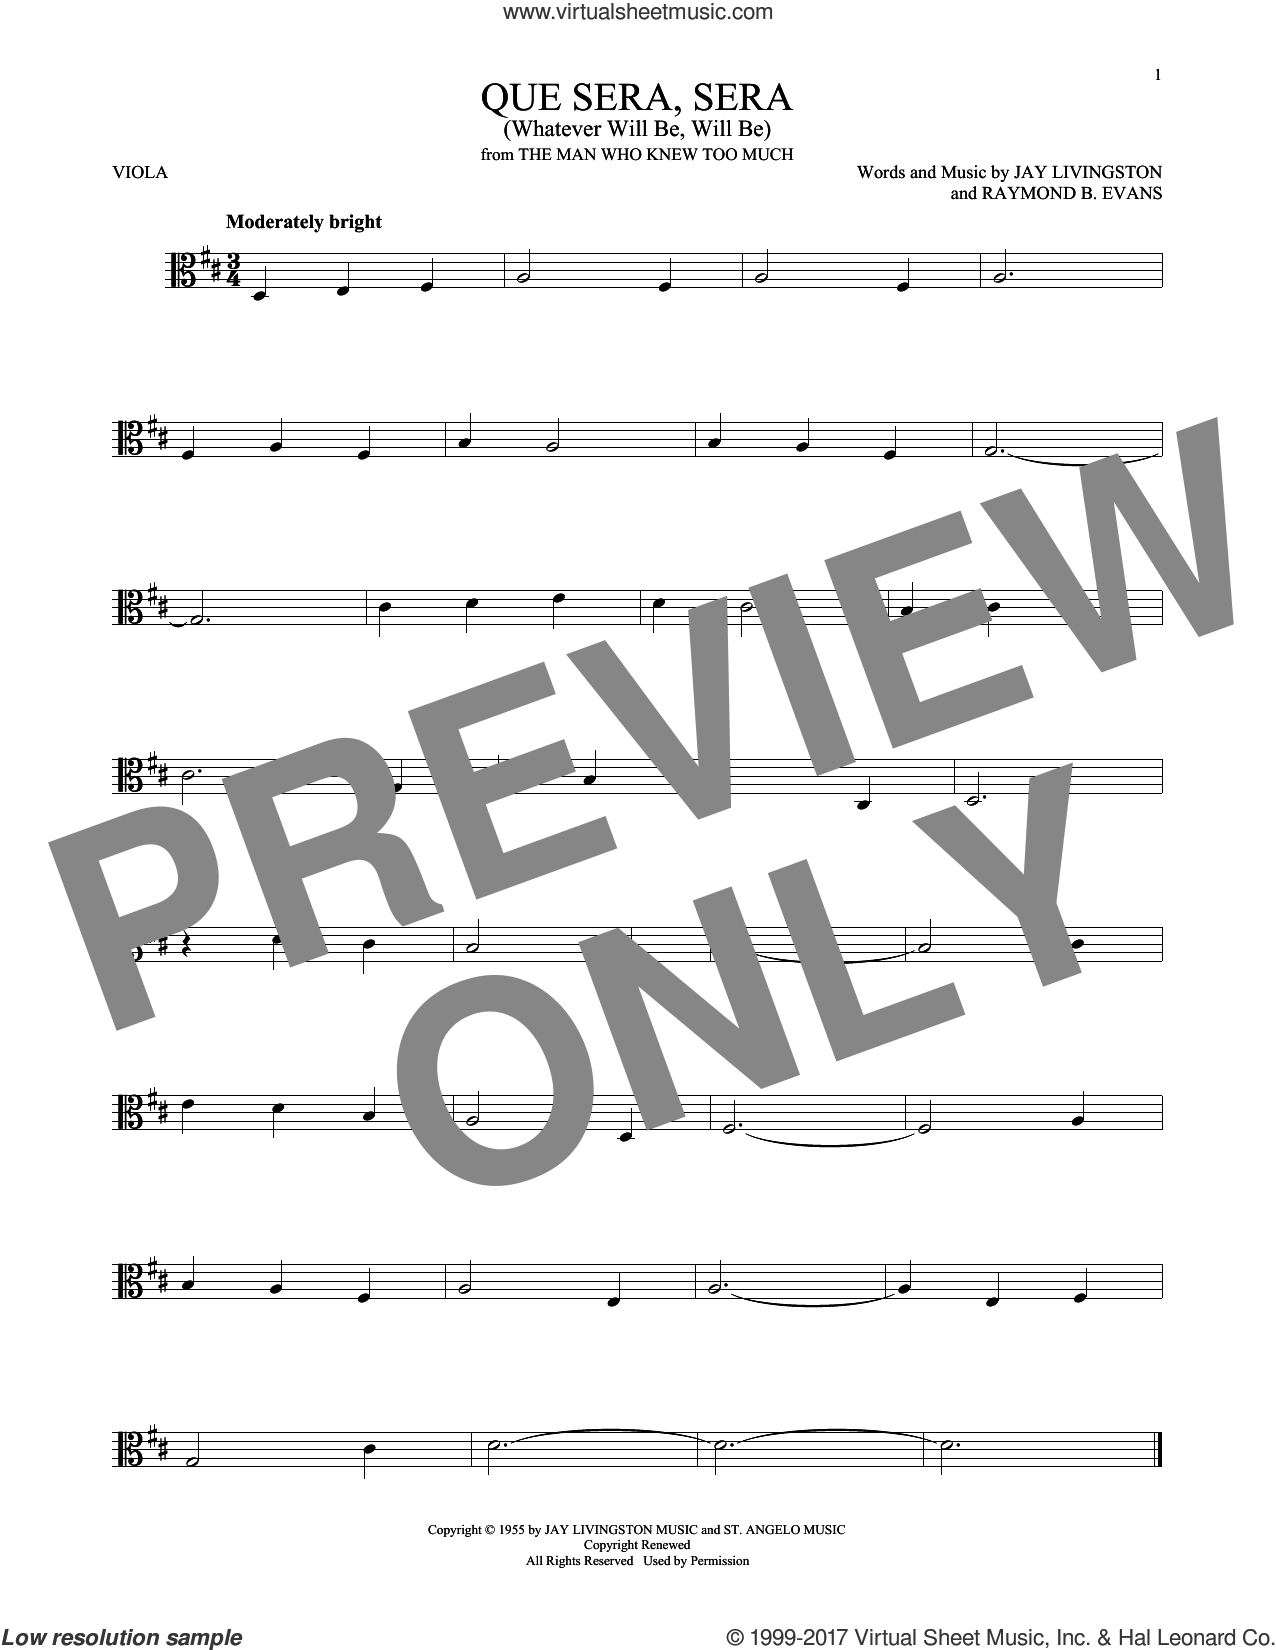 Que Sera, Sera (Whatever Will Be, Will Be) sheet music for viola solo by Doris Day, Jay Livingston and Raymond B. Evans, intermediate skill level